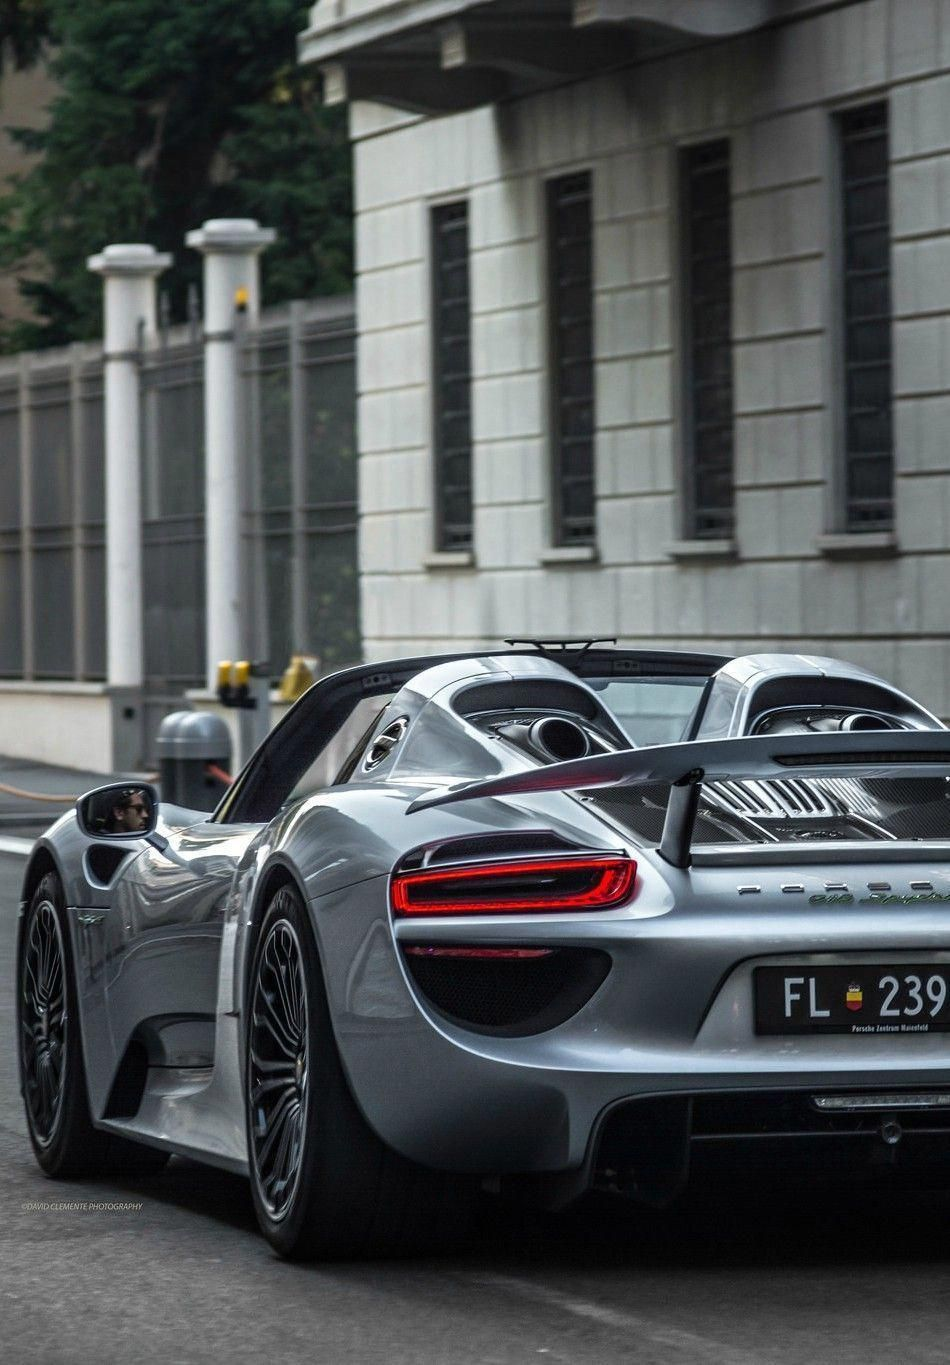 Nice Cars Above Are High End Autos That Are Expensive High End Vehicles Remain In Limited Manufacturing So There Ar Sports Car Photos Porsche 918 Sports Cars